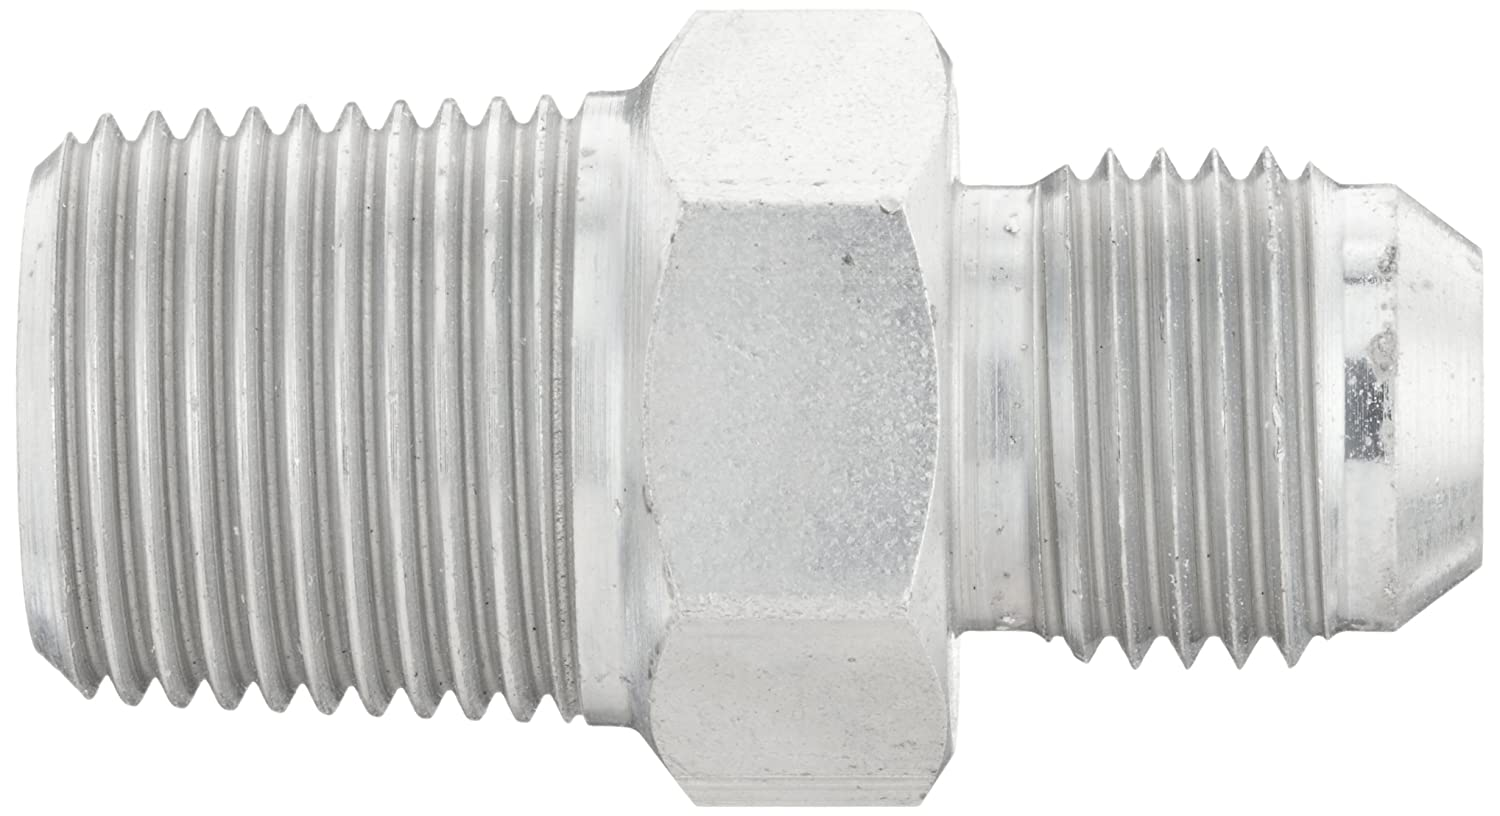 Male BSPT 3//8-BSPT JIC 37 Degree /& BSPT End Types 3//8 Tube OD 3//8 Tube OD x 3//8 JIC m End Size m Carbon Steel Male 37 Degree JIC Eaton Aeroquip GG110-NP06-06 Male Connector